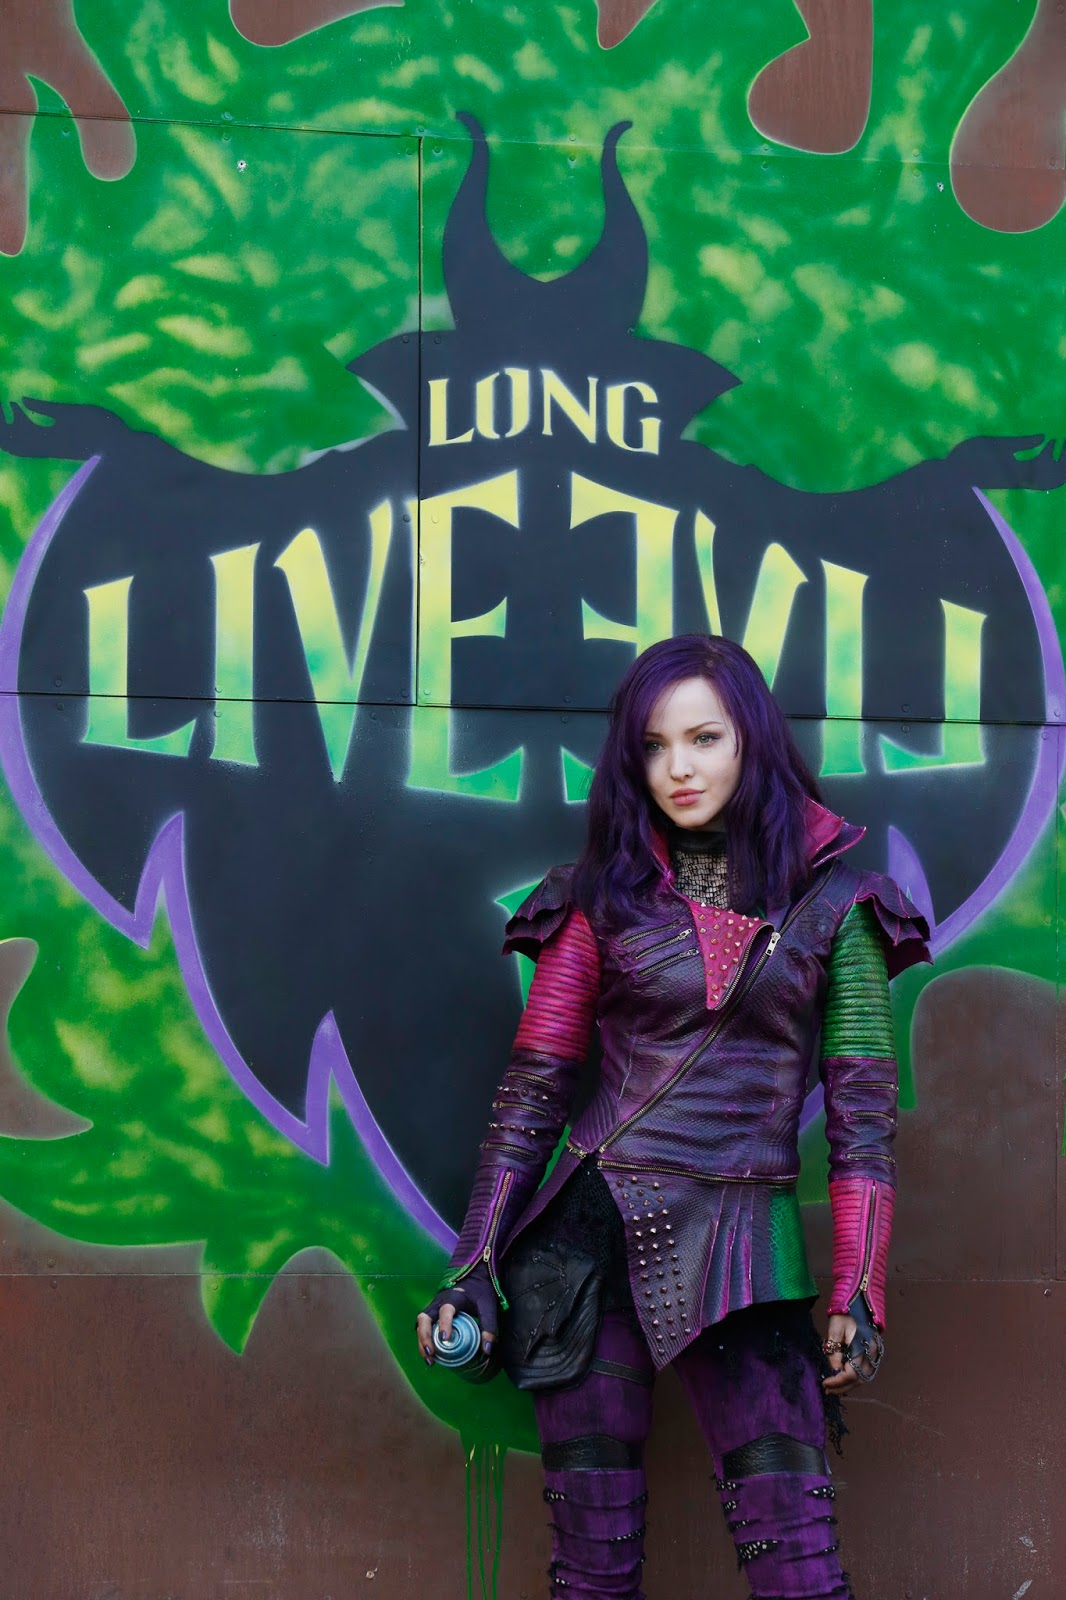 Disney Descendants: Movie Posters in High Quality. | Oh My ...